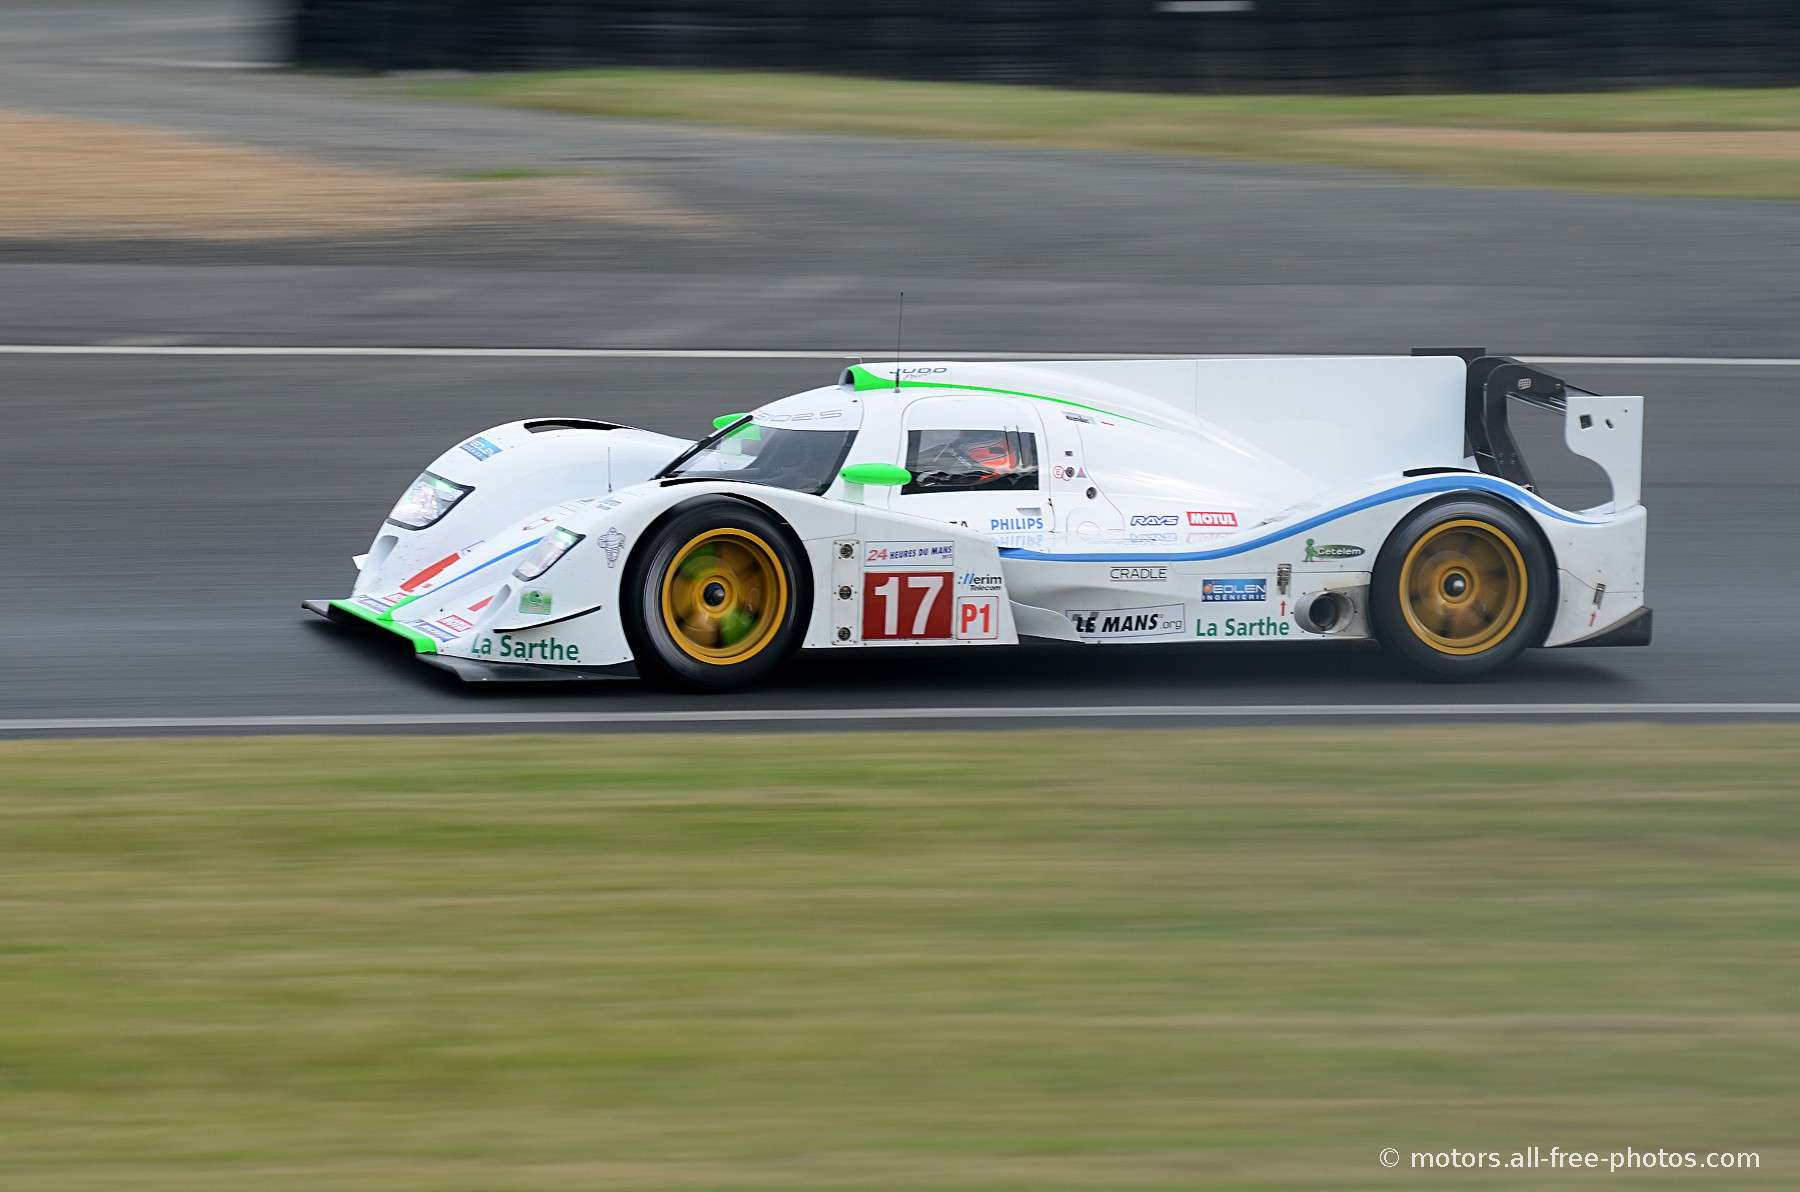 Dome S102.5-Judd - Team Pescarolo